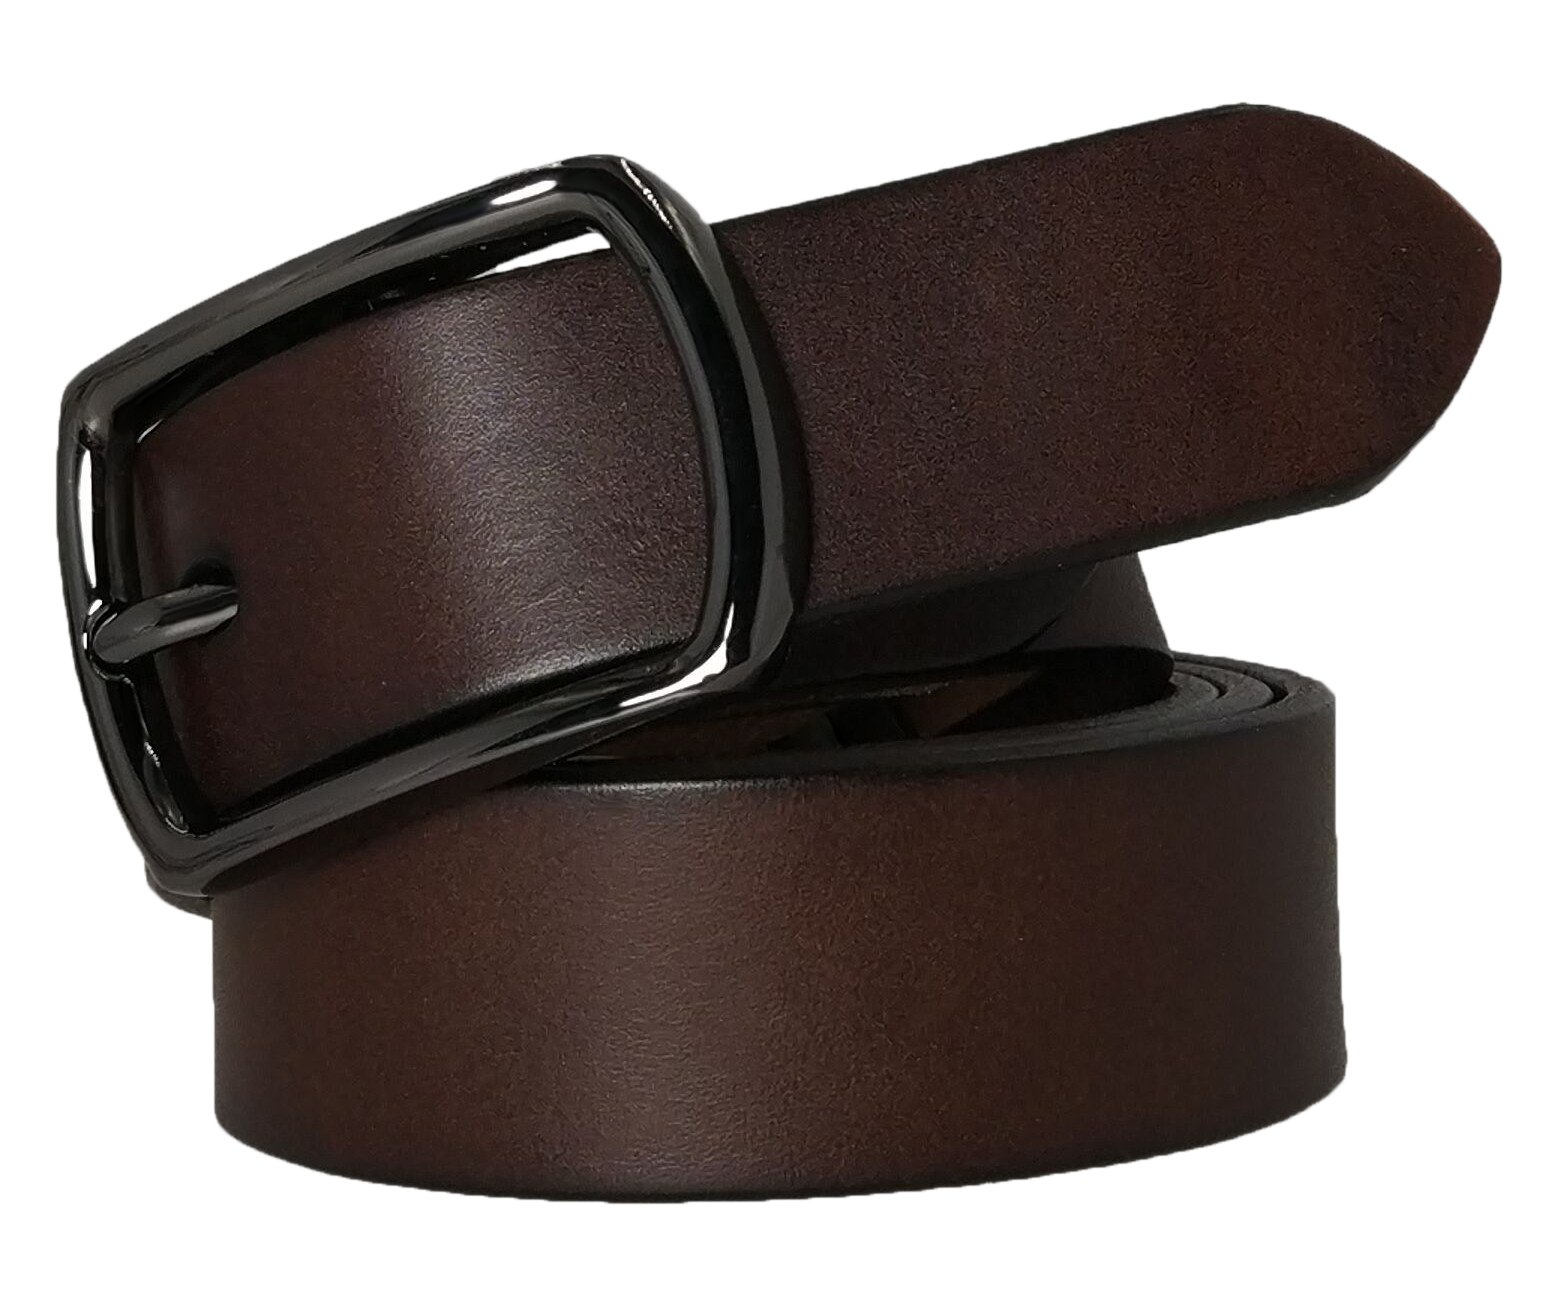 West Leathers Women's Premium Solid Thick Full Grain Leather Belt - Guaranteed No Break Belts M Style 1